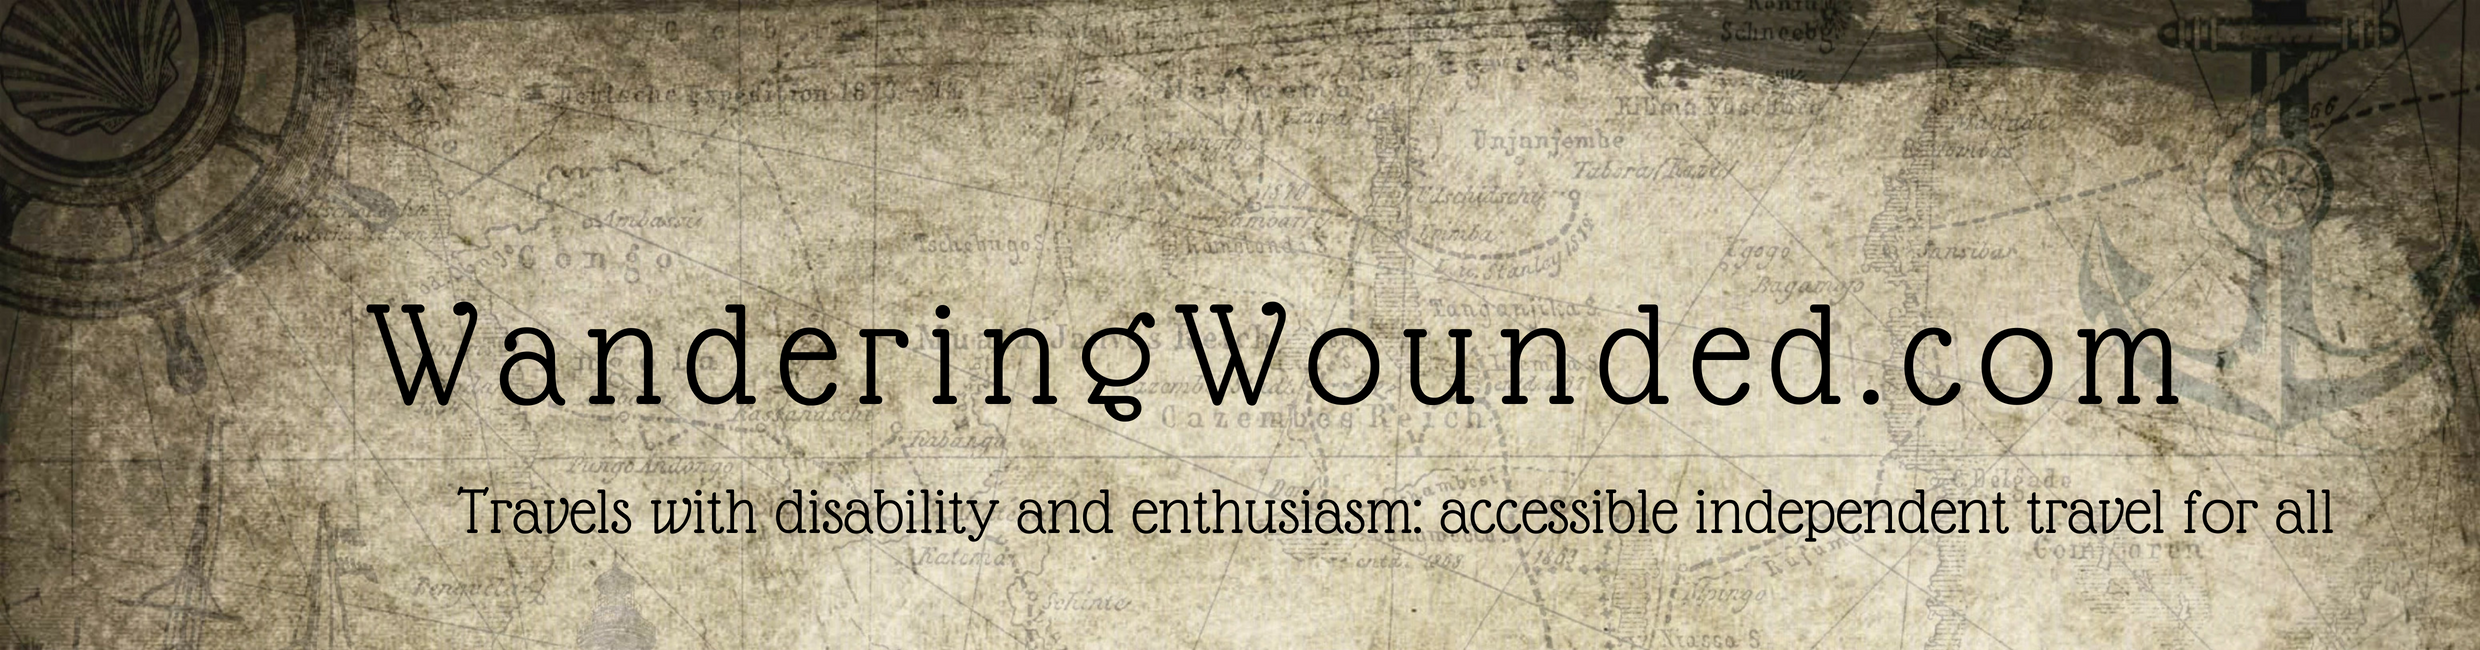 WanderingWounded.com | Travels with disability and enthusiasm: accessible independent travel for all